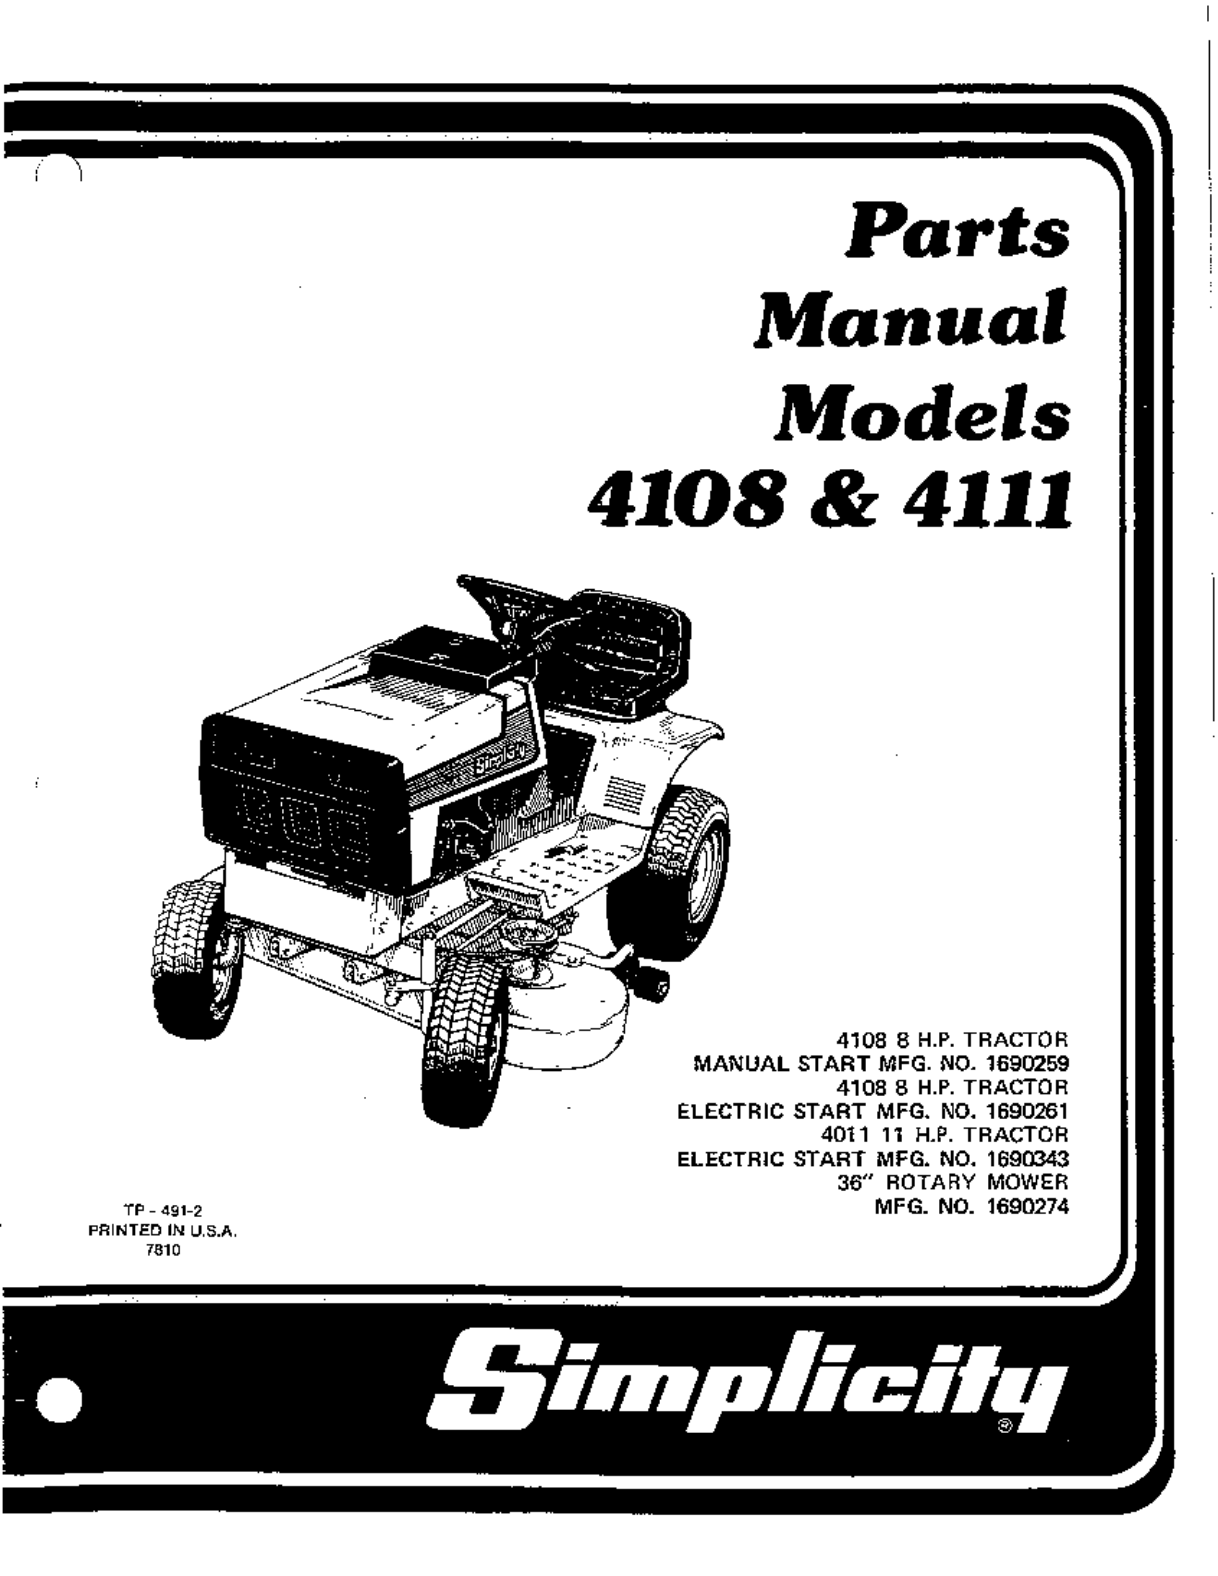 simplicity tractor mower manual user guide manual that easy to read u2022 rh sibere co Simplicity Rider Mower Parts Simplicity Mower Repair